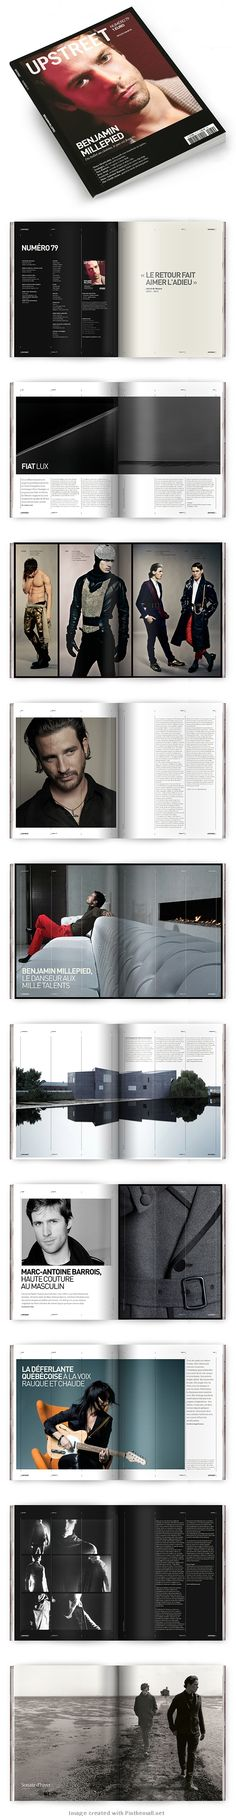 Upstreet Magazine   Re-design and layout of men's high end arts, culture and lifestyle magazine.  Source : http://www.behance.net/gallery/Upstreet-Magazine-Mens-Fashion-Arts-Culture/2358806